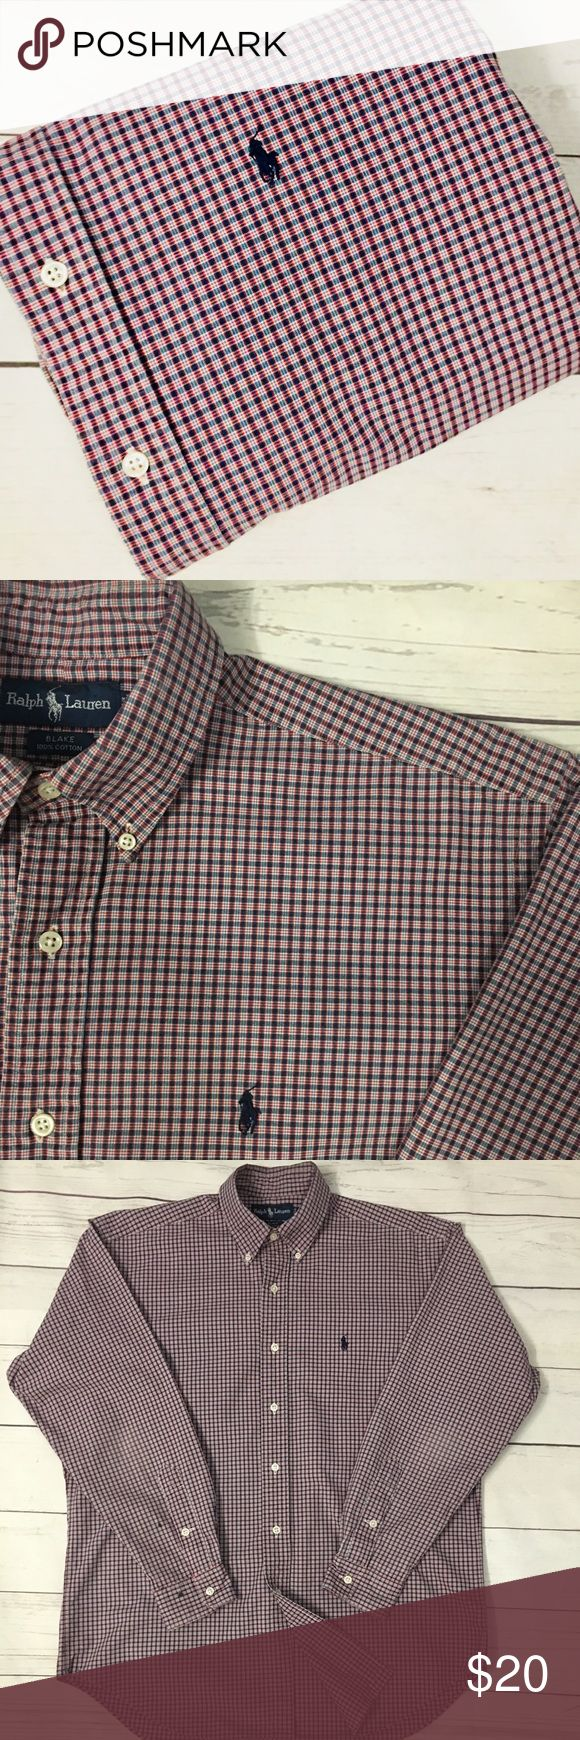 """🐎 🐎SALE 🐎1/$20•2/$35•3/$50•🐎POLO• RALPH• LAUREN•  🇺🇸Military, police & fire men & women receive 10% discount🇺🇸  men's  long sleeve 100% cotton oxford shirt• M BLAKE per tag, see measurements below•  Signature pony•  GUC• spots on cuff, as pictured•  shoulder: 20.5"""" Chest: 25"""" (armpit-armpit) Sleeve: 34"""" Length: 33""""  🐎CHECK BACK EACH WEEK FOR NEW POLO LISTINGS🐎 Polo by Ralph Lauren Shirts Casual Button Down Shirts"""